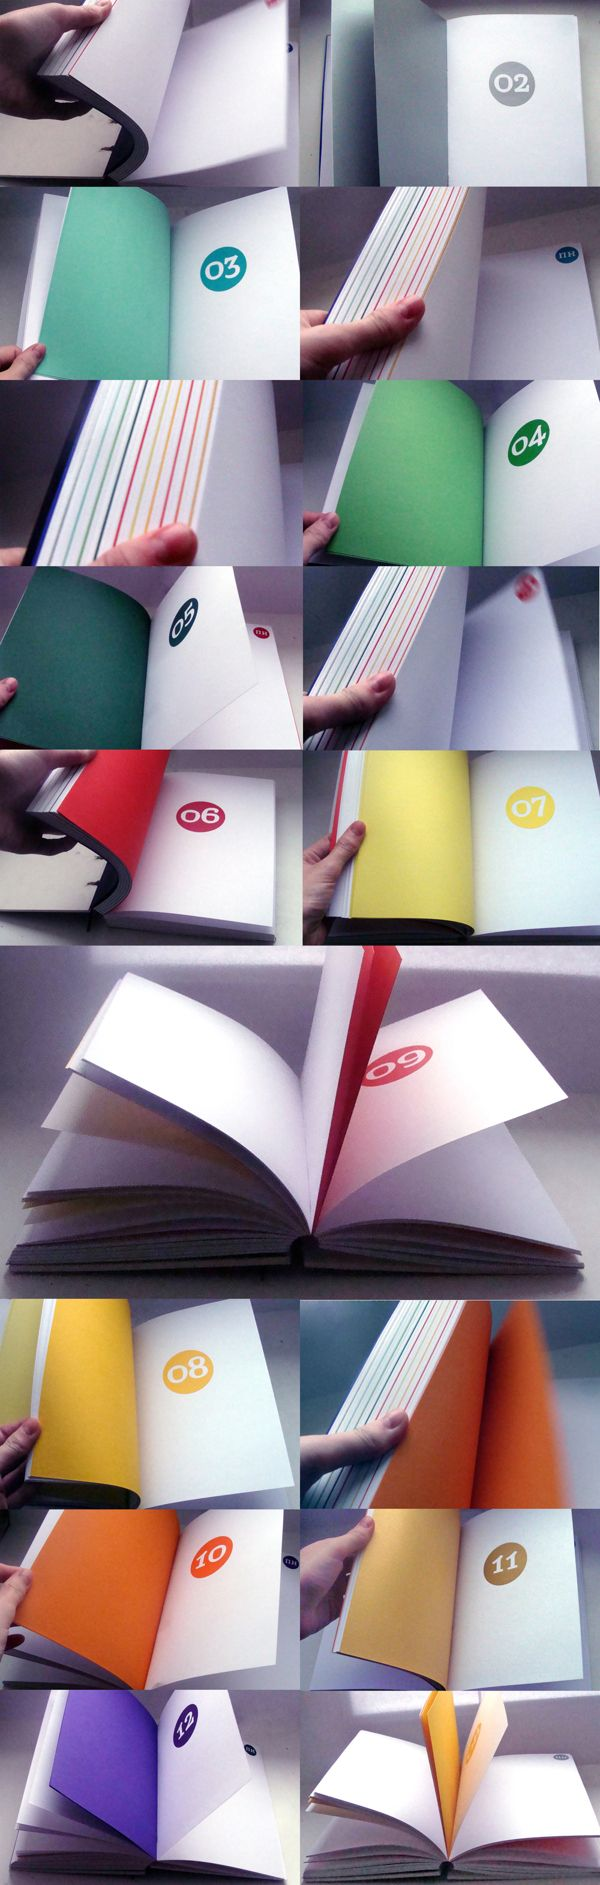 Projects annual notebook — Designspiration